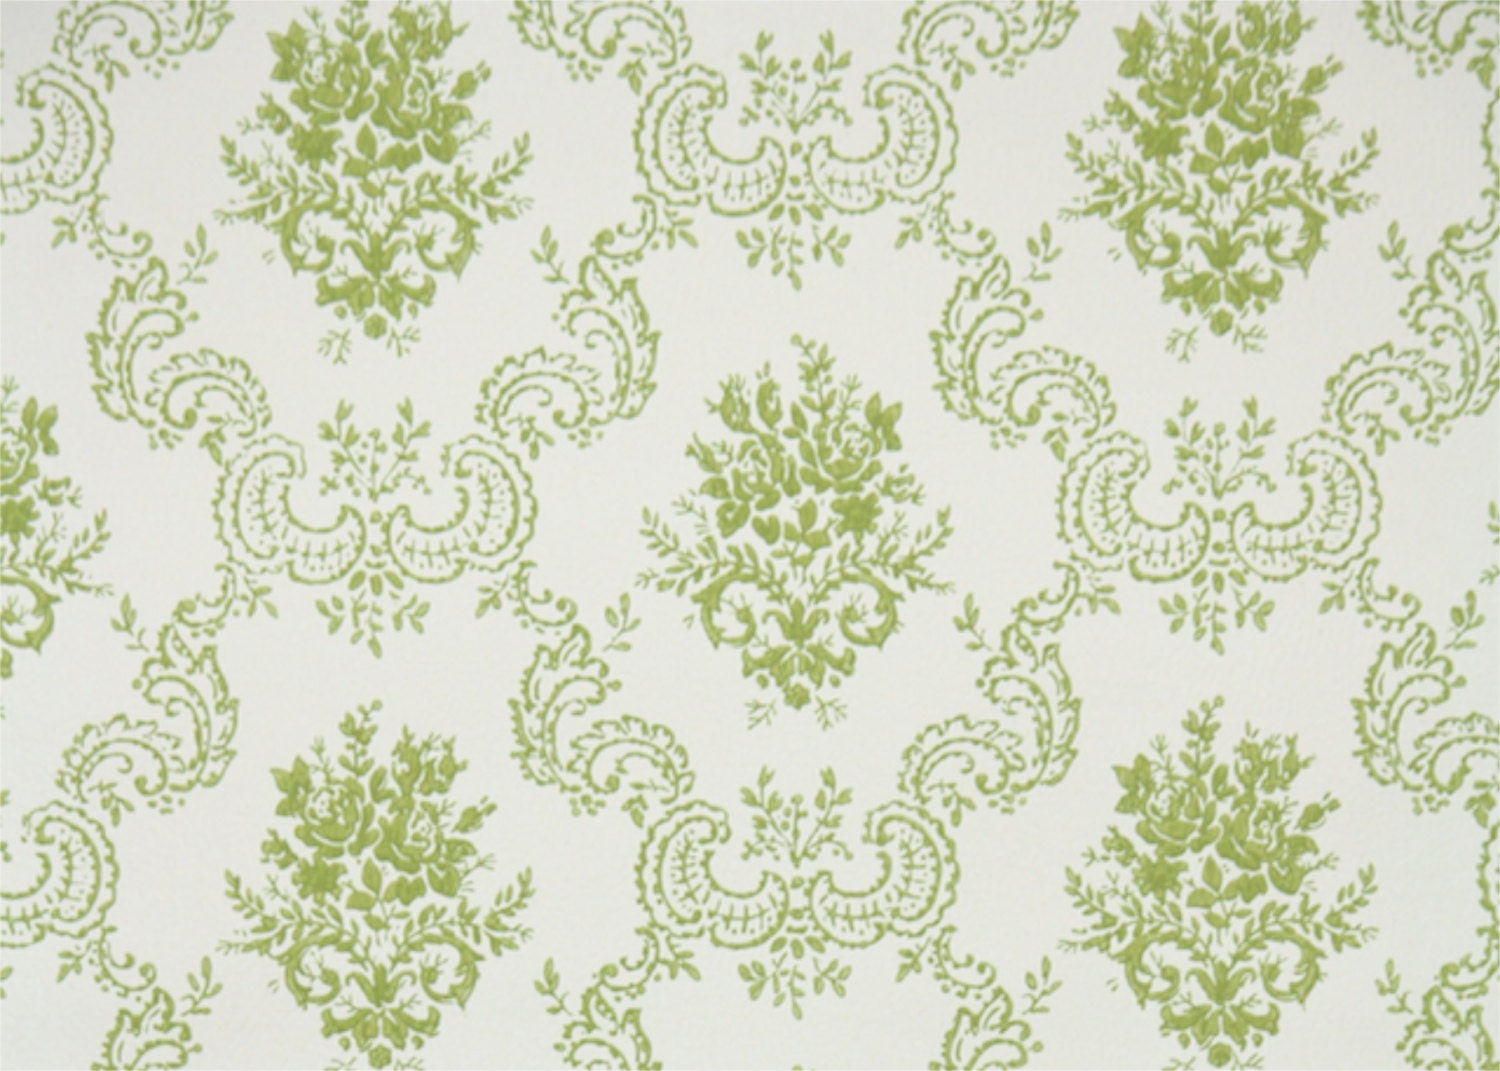 1950s Vintage Wallpaper By The Yard Green And White Rose